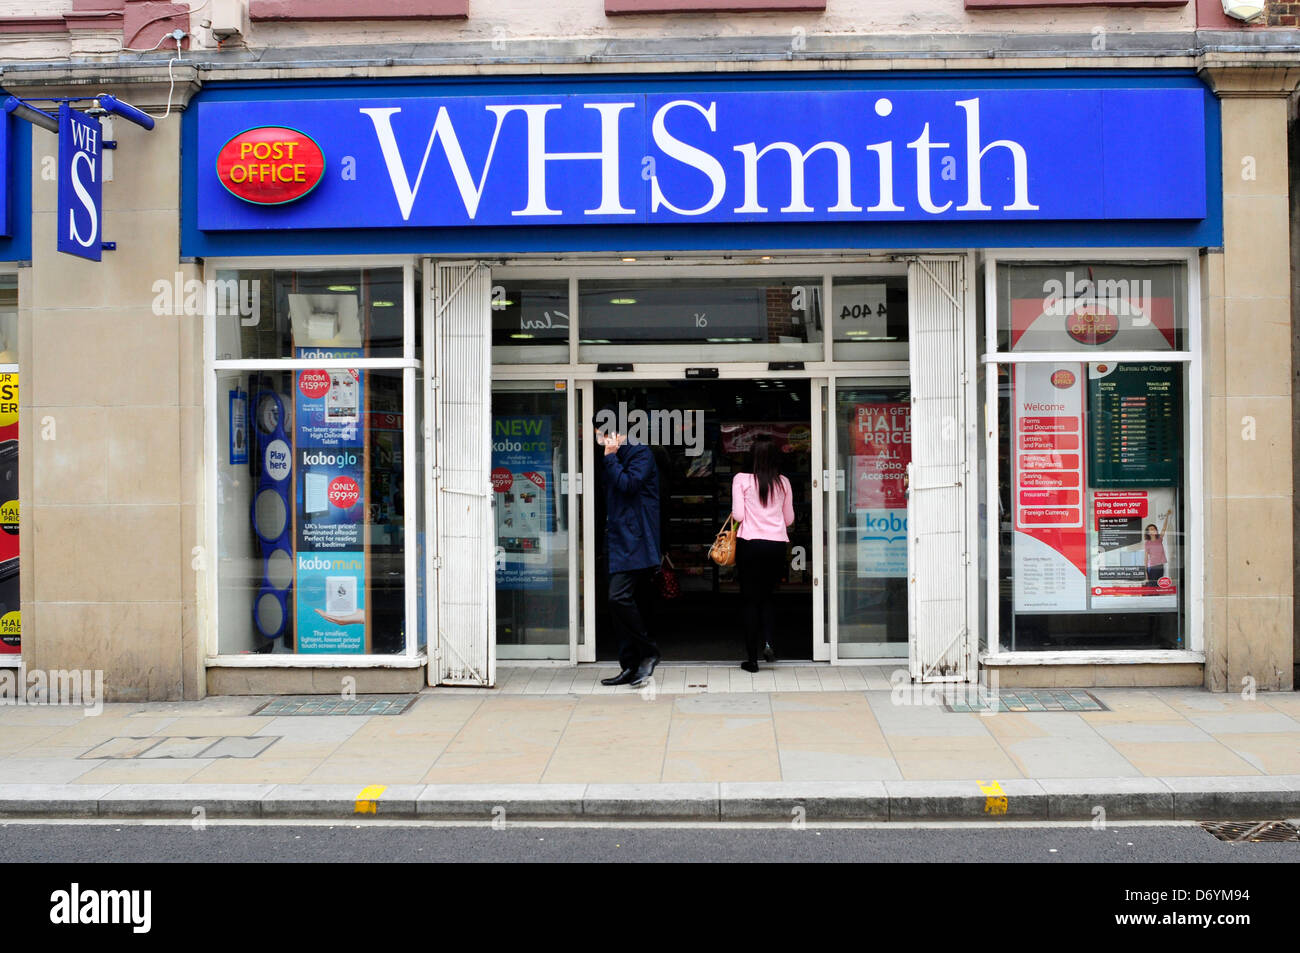 a front view of w h smith post office shop in richmond london uk stock photo royalty free. Black Bedroom Furniture Sets. Home Design Ideas